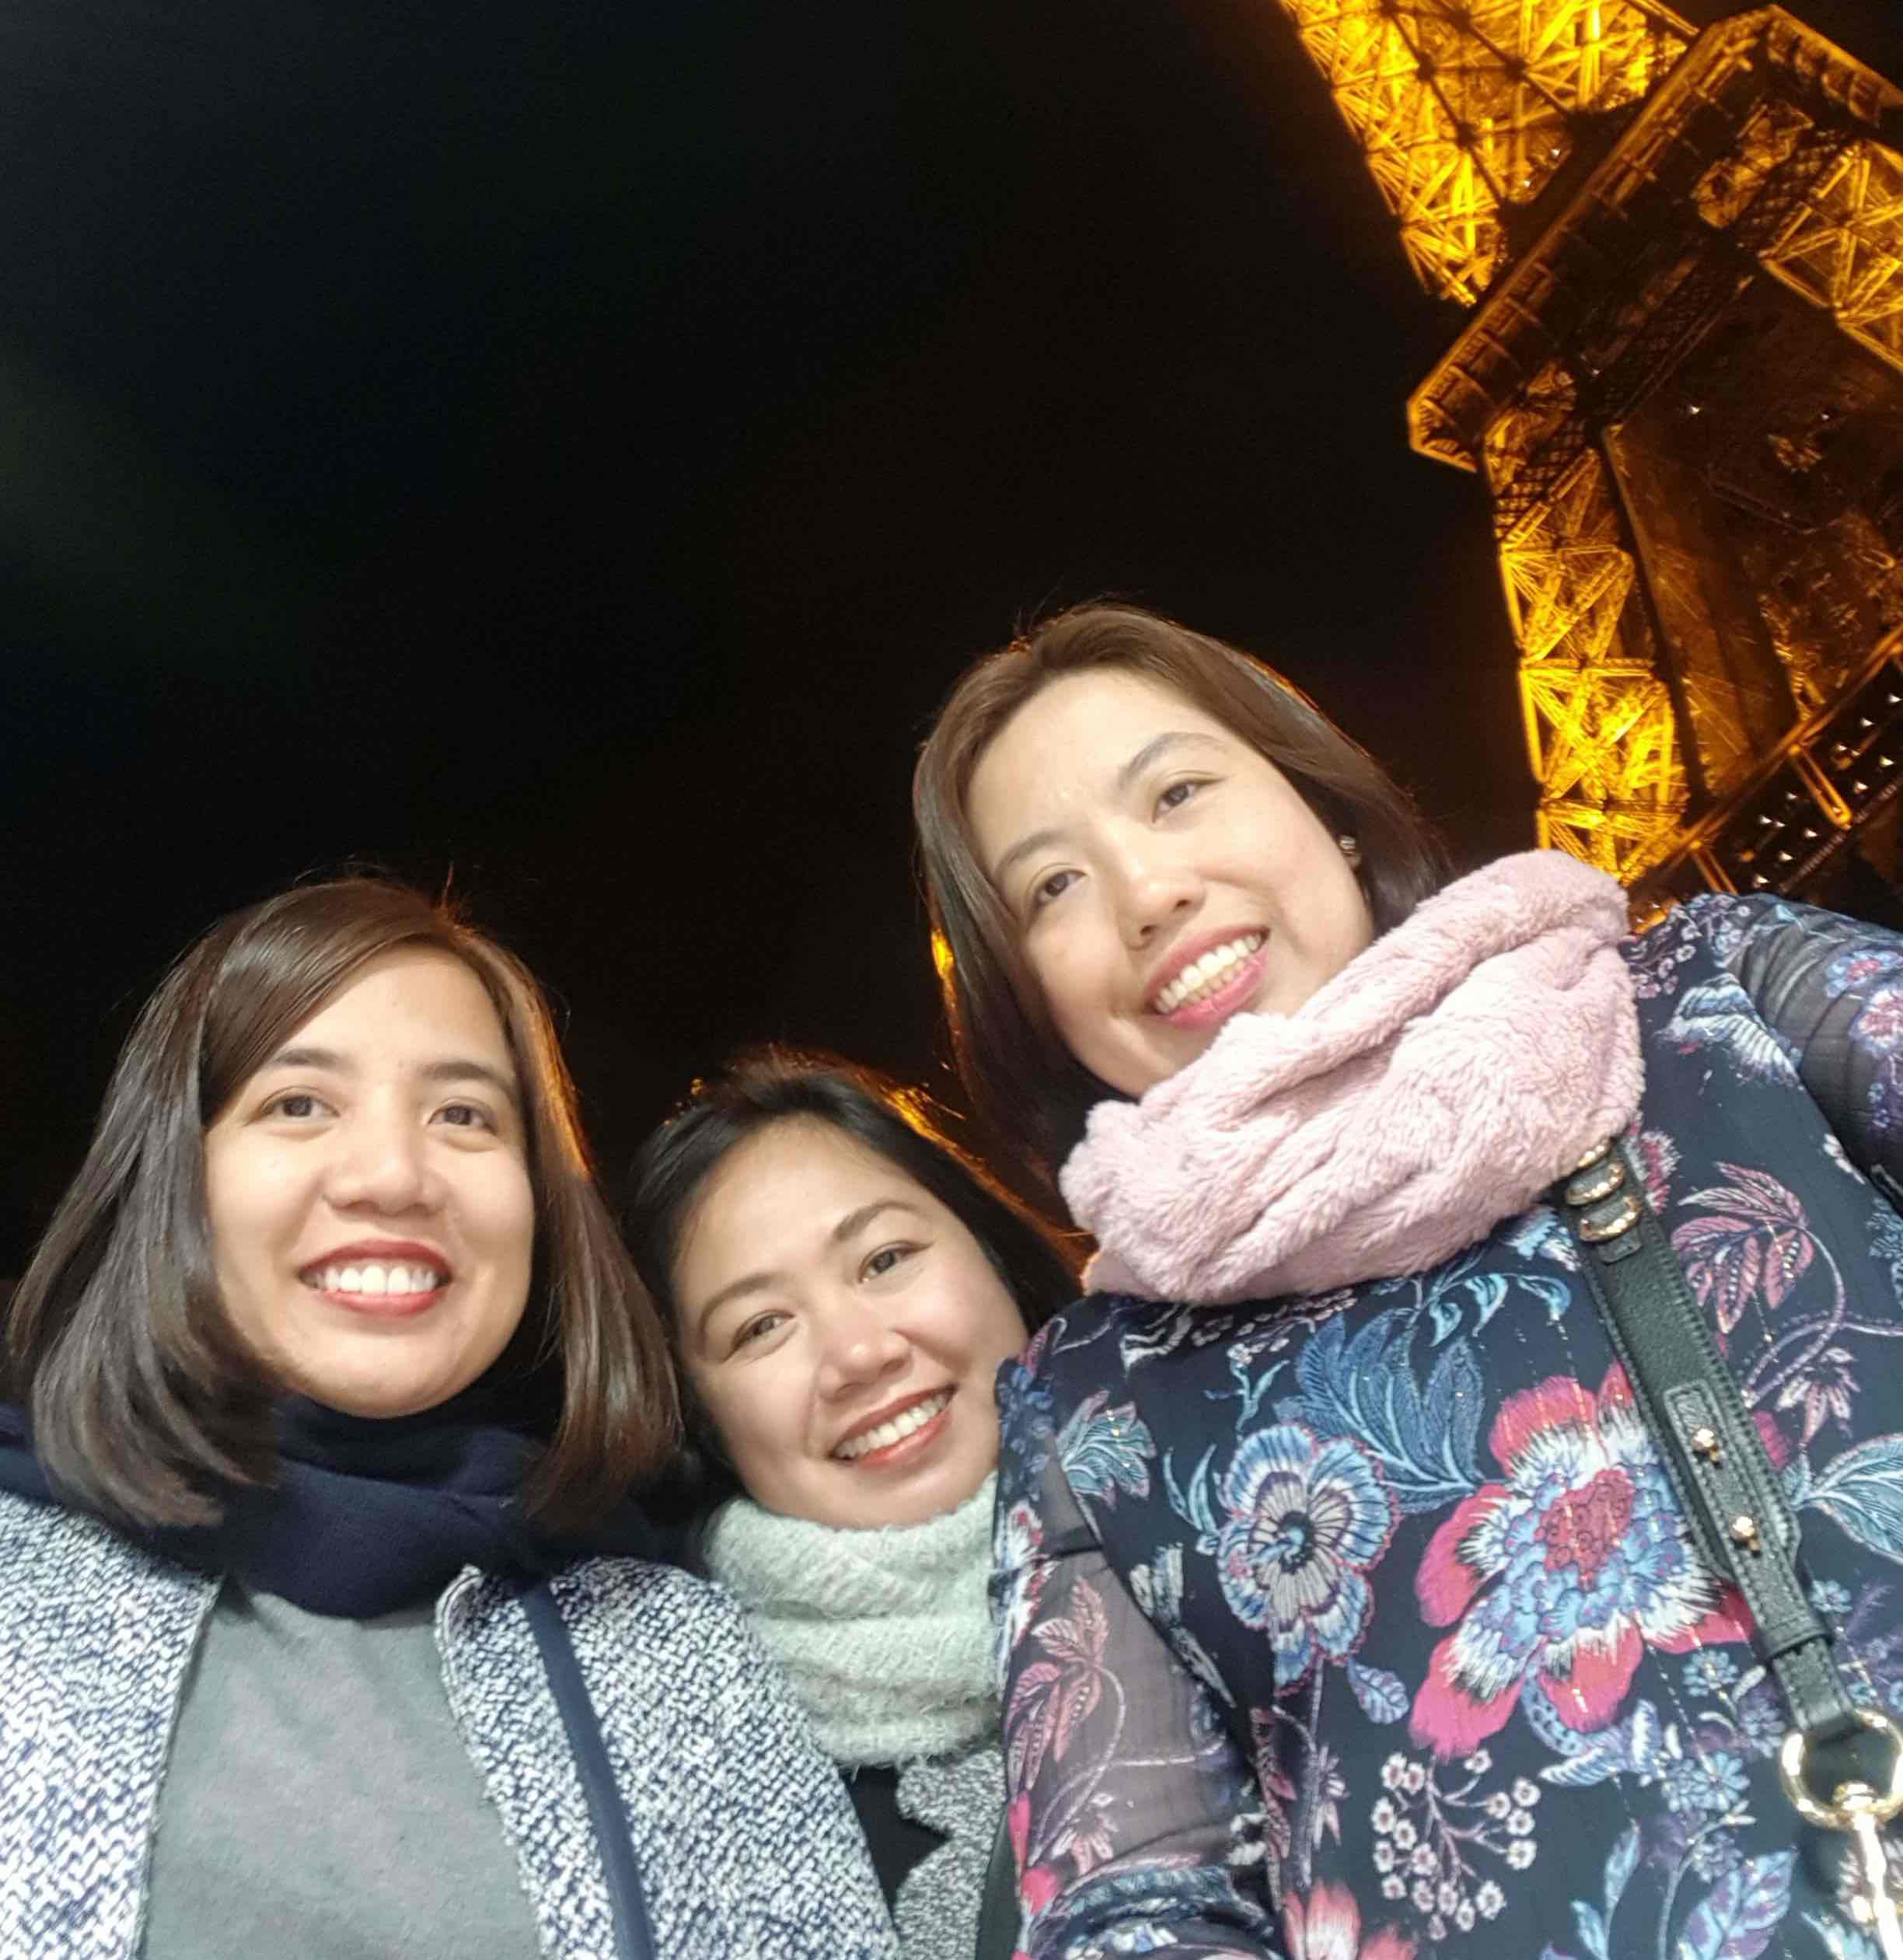 Mich, Iris and Nerie Finds Their Happy Place in Europe